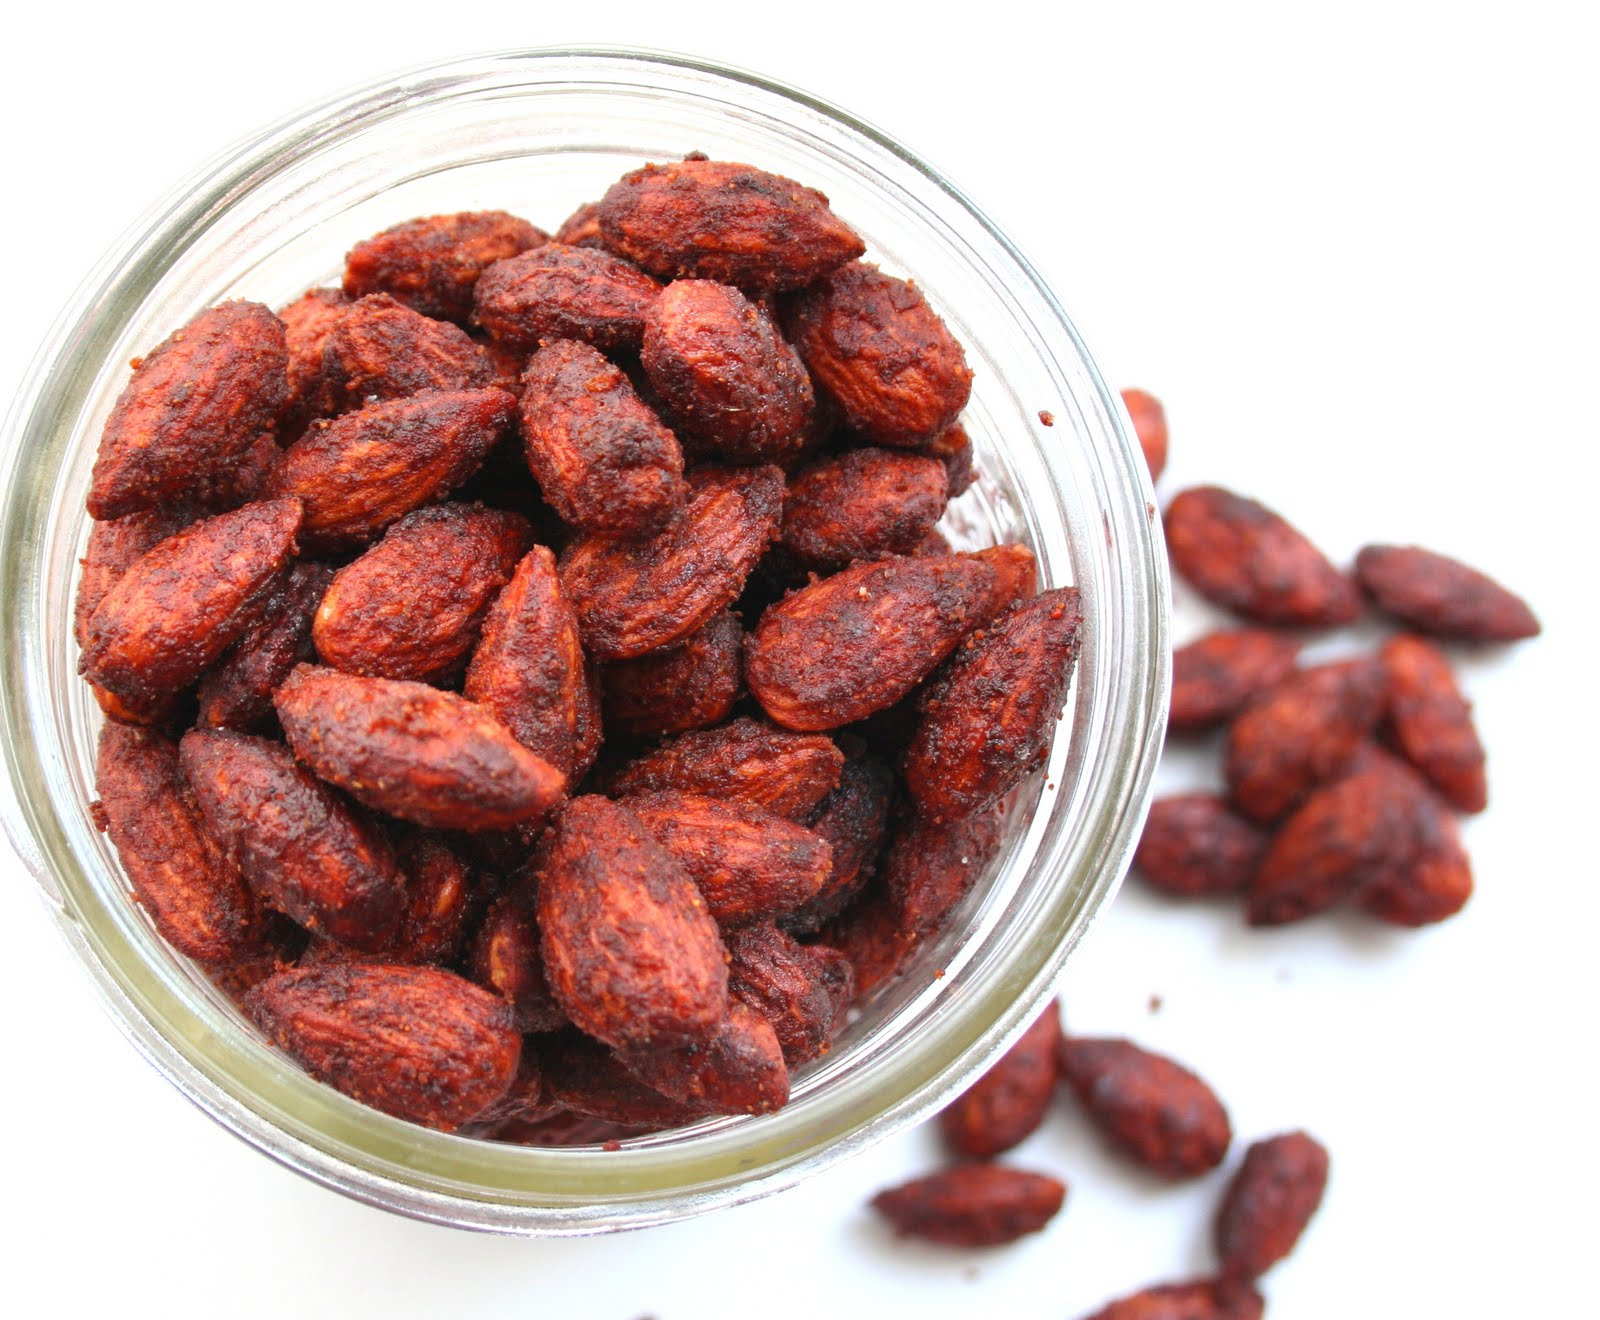 Five Spice Roasted Almonds (Low Carb and Gluten Free) | All